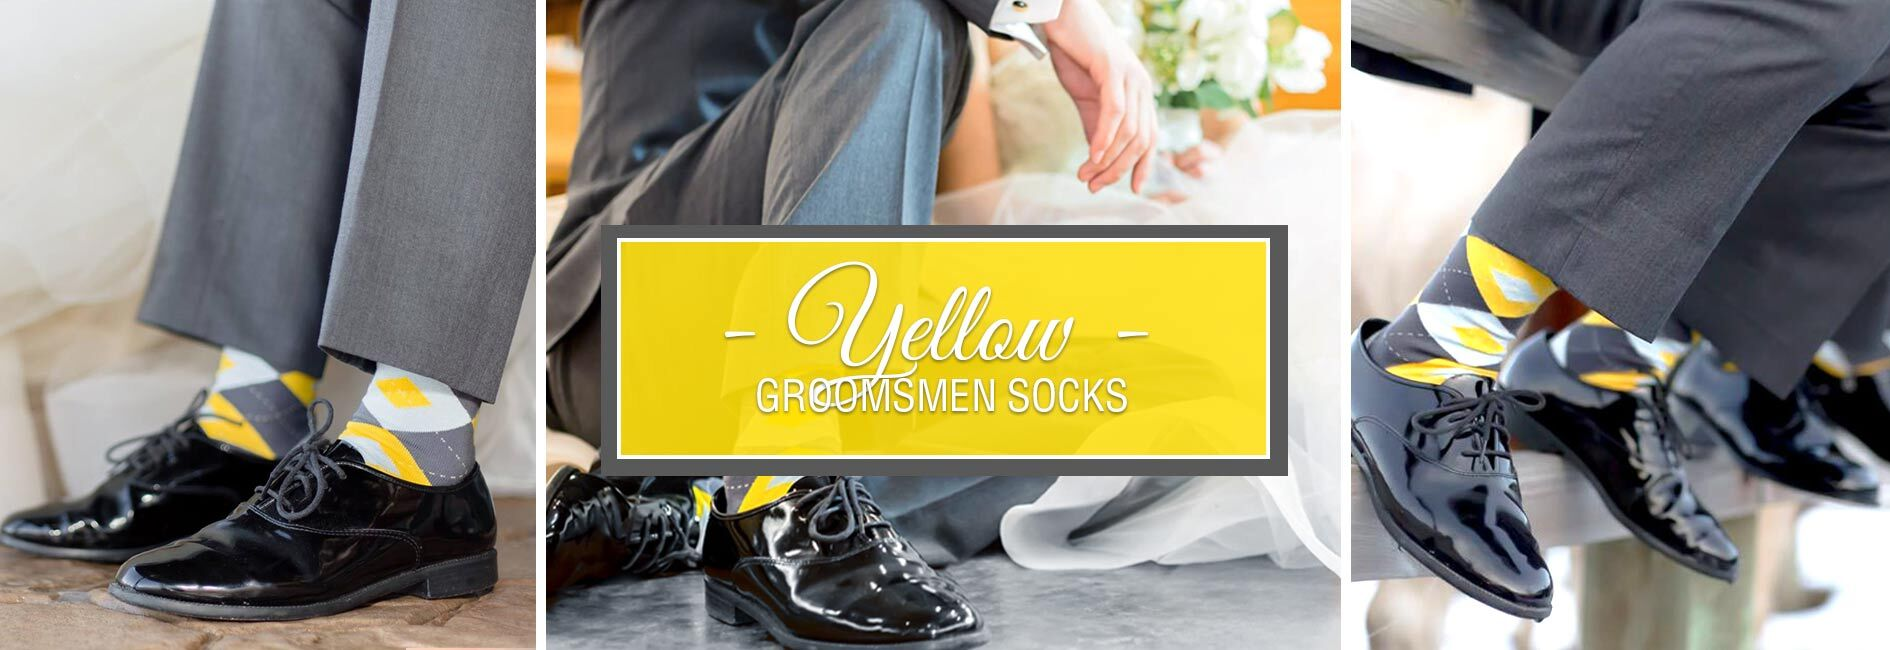 Yellow Groomsmen Wedding Socks Banner